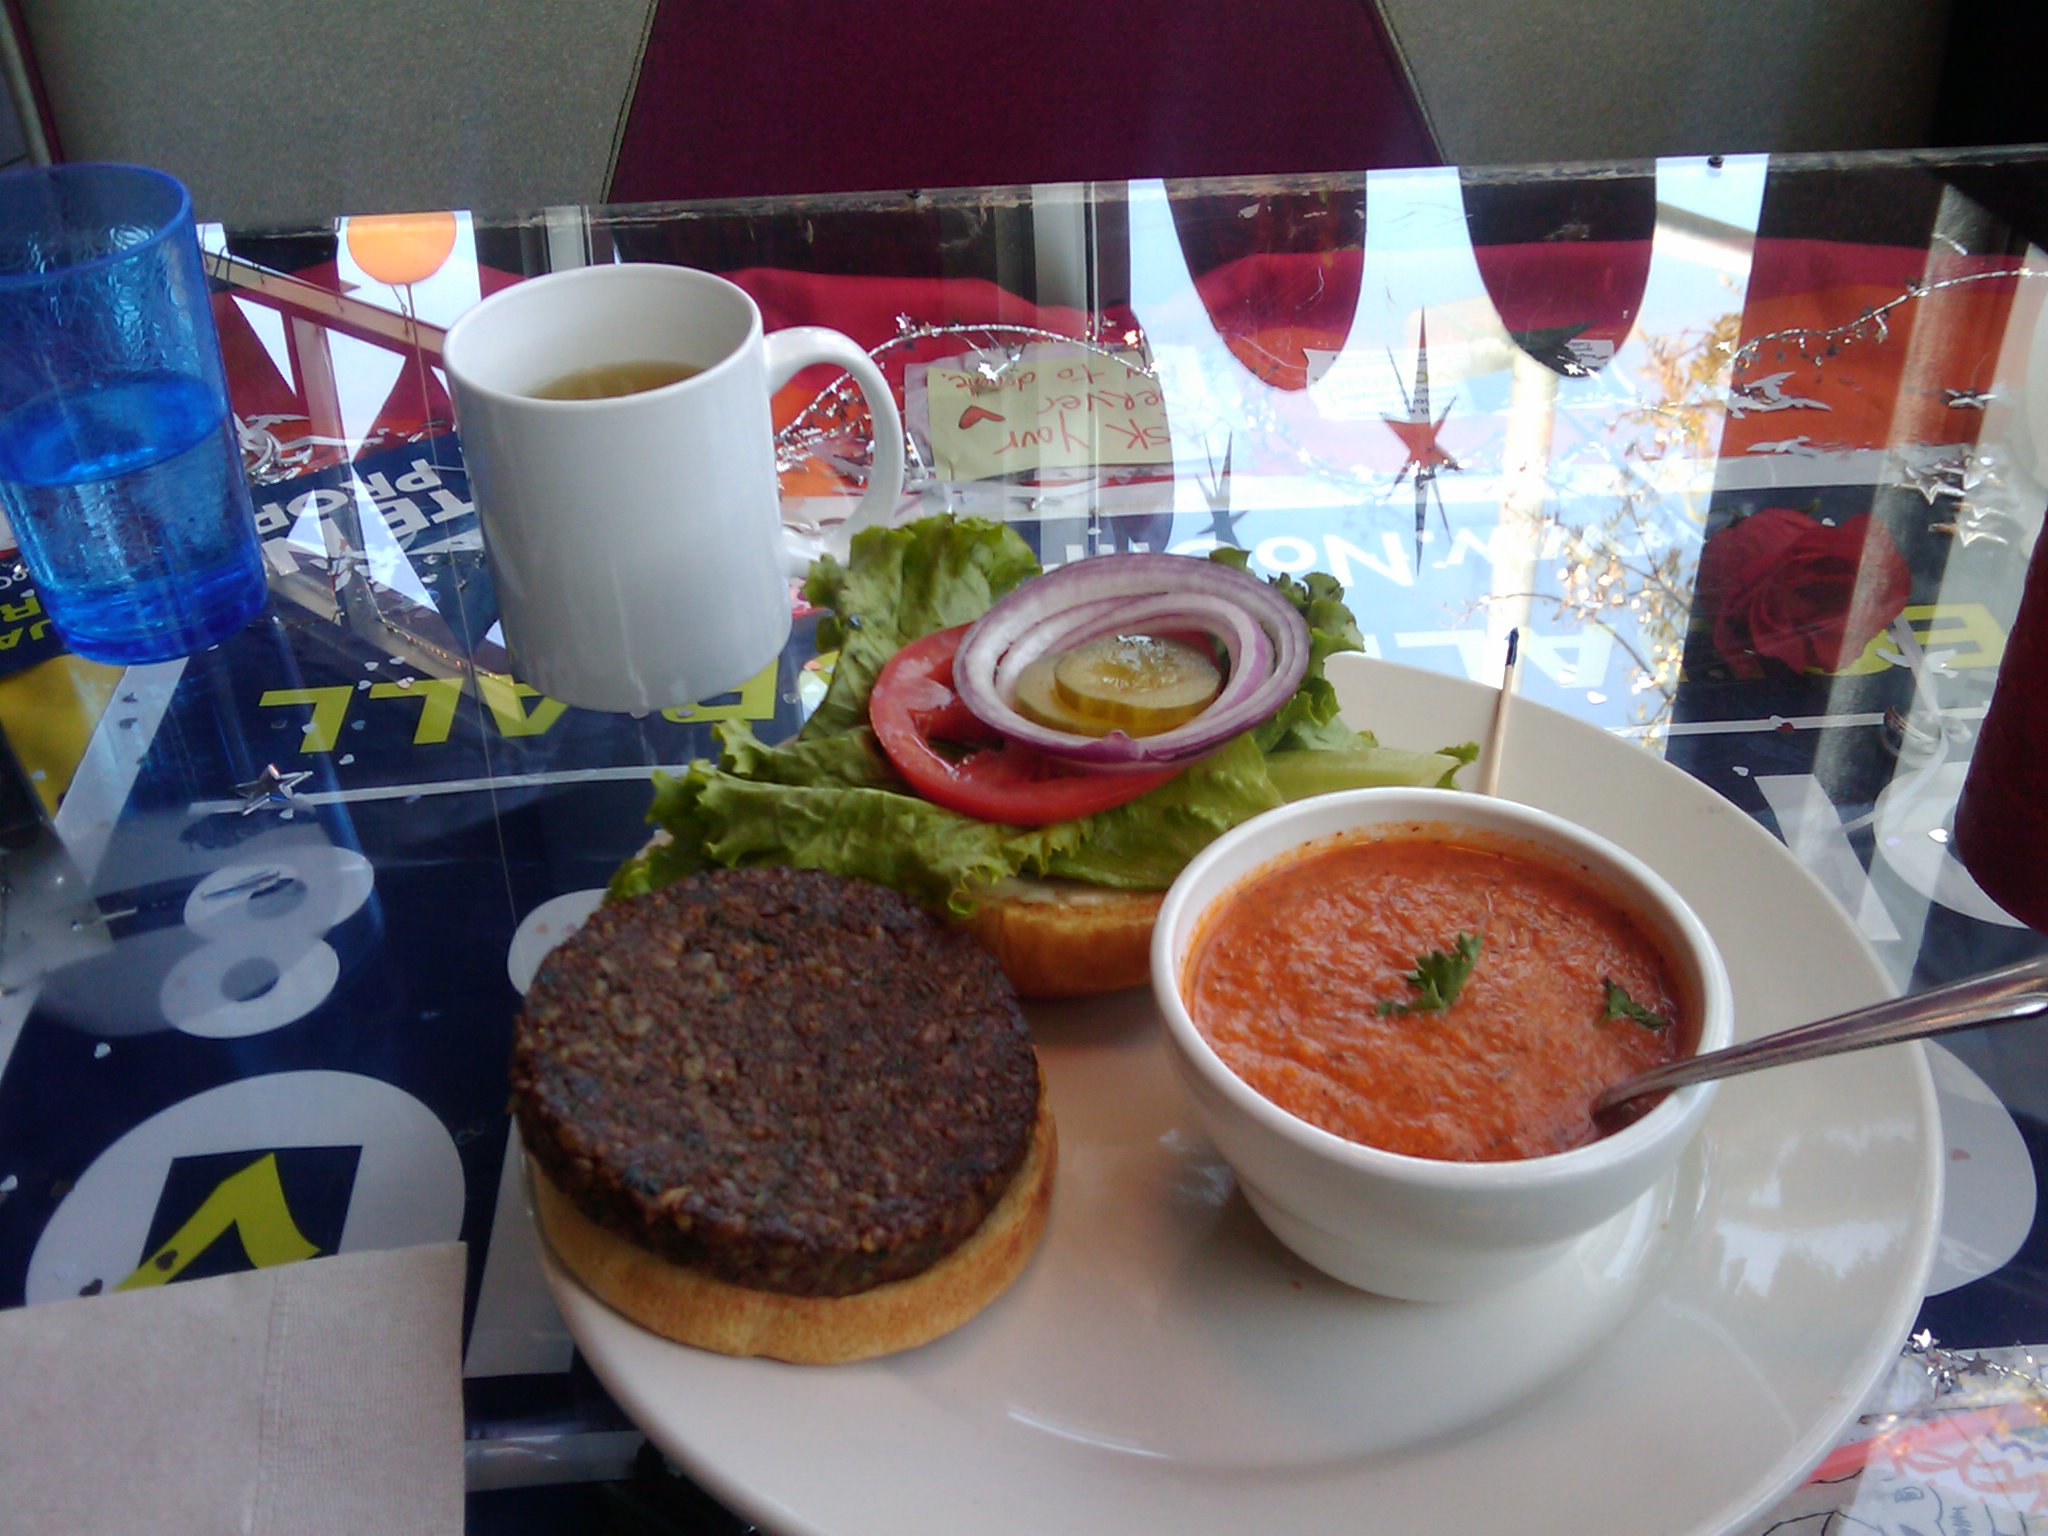 File Vege Burger At Saturn Cafe Santa Cruz 3619877618